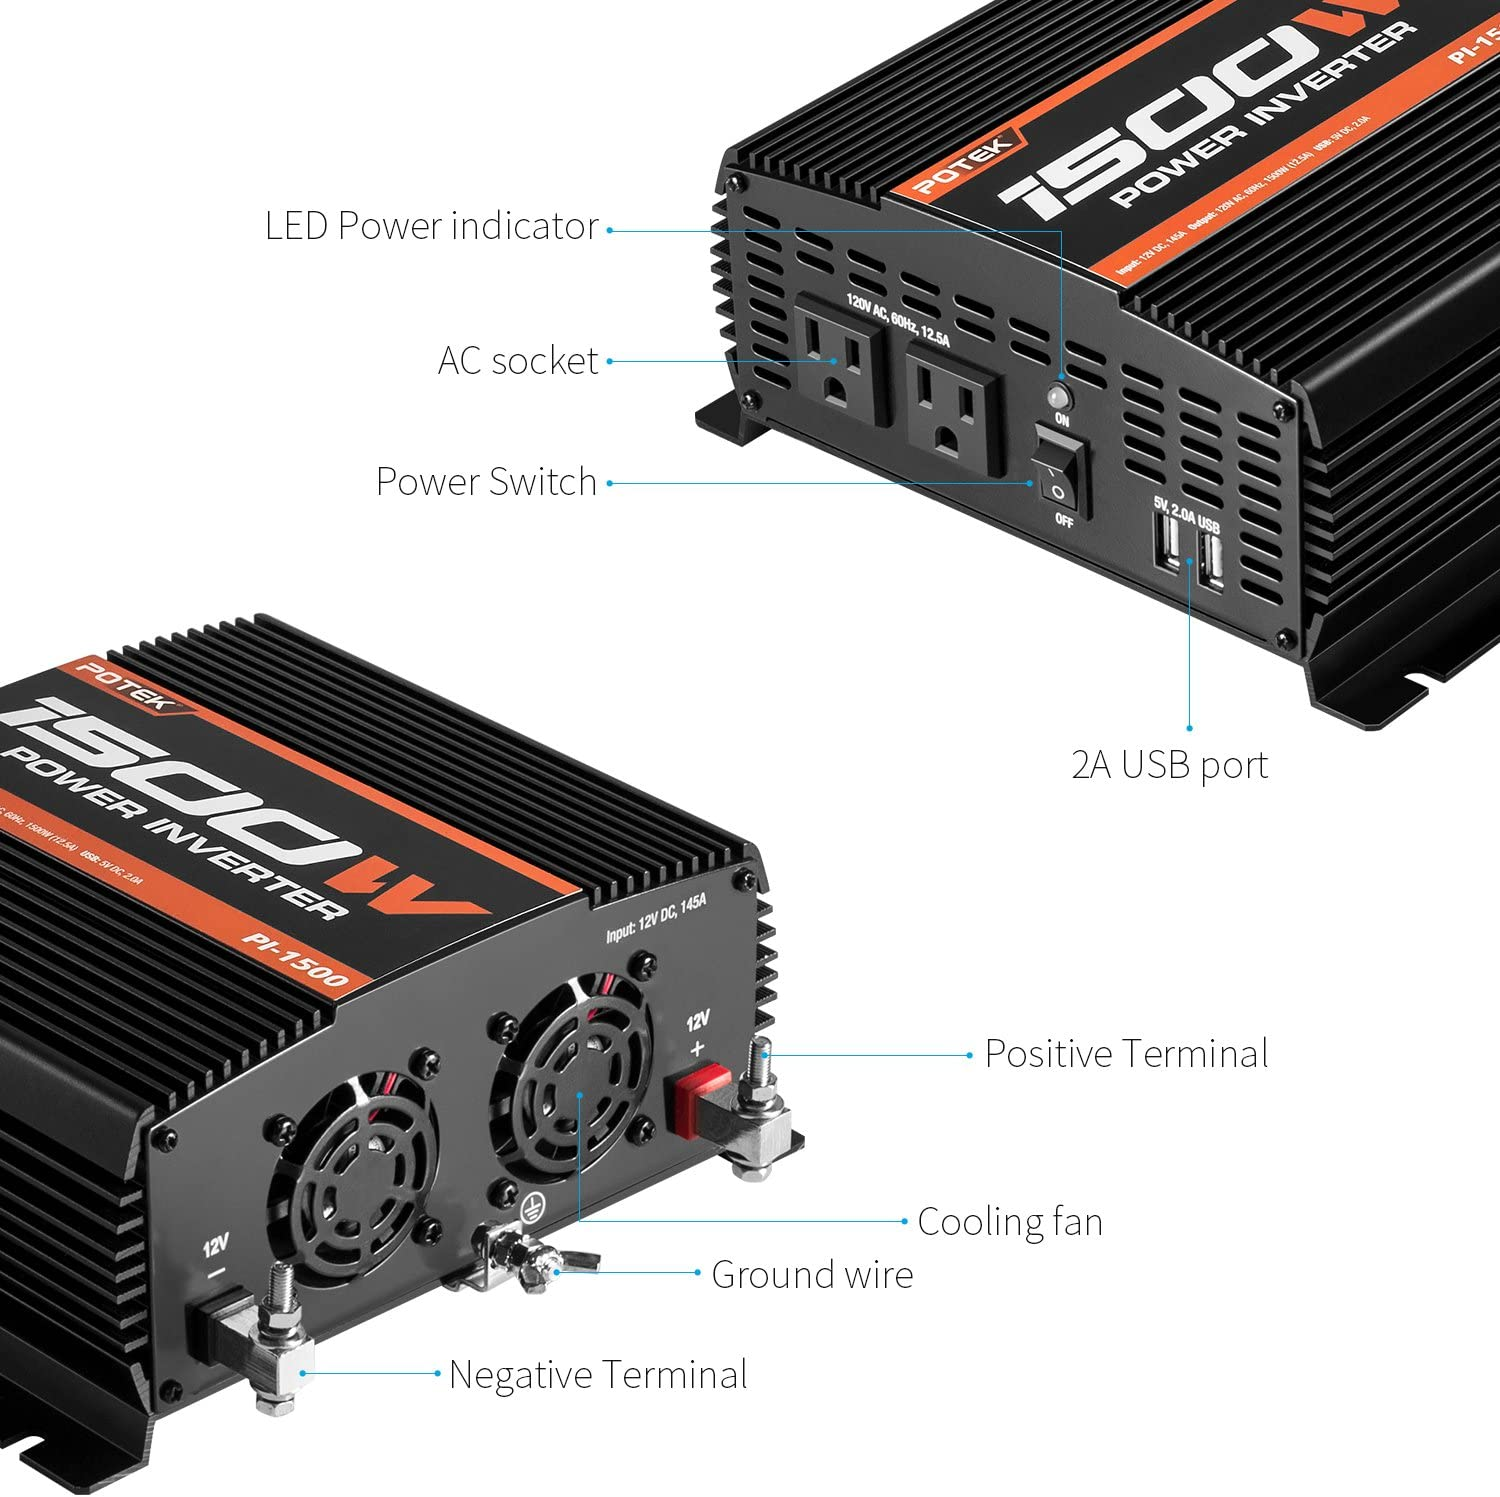 POTEK 1500W Power Inverter Dual AC Outlets DC 12V to 110VAC Car Inverter with 2 USB Ports